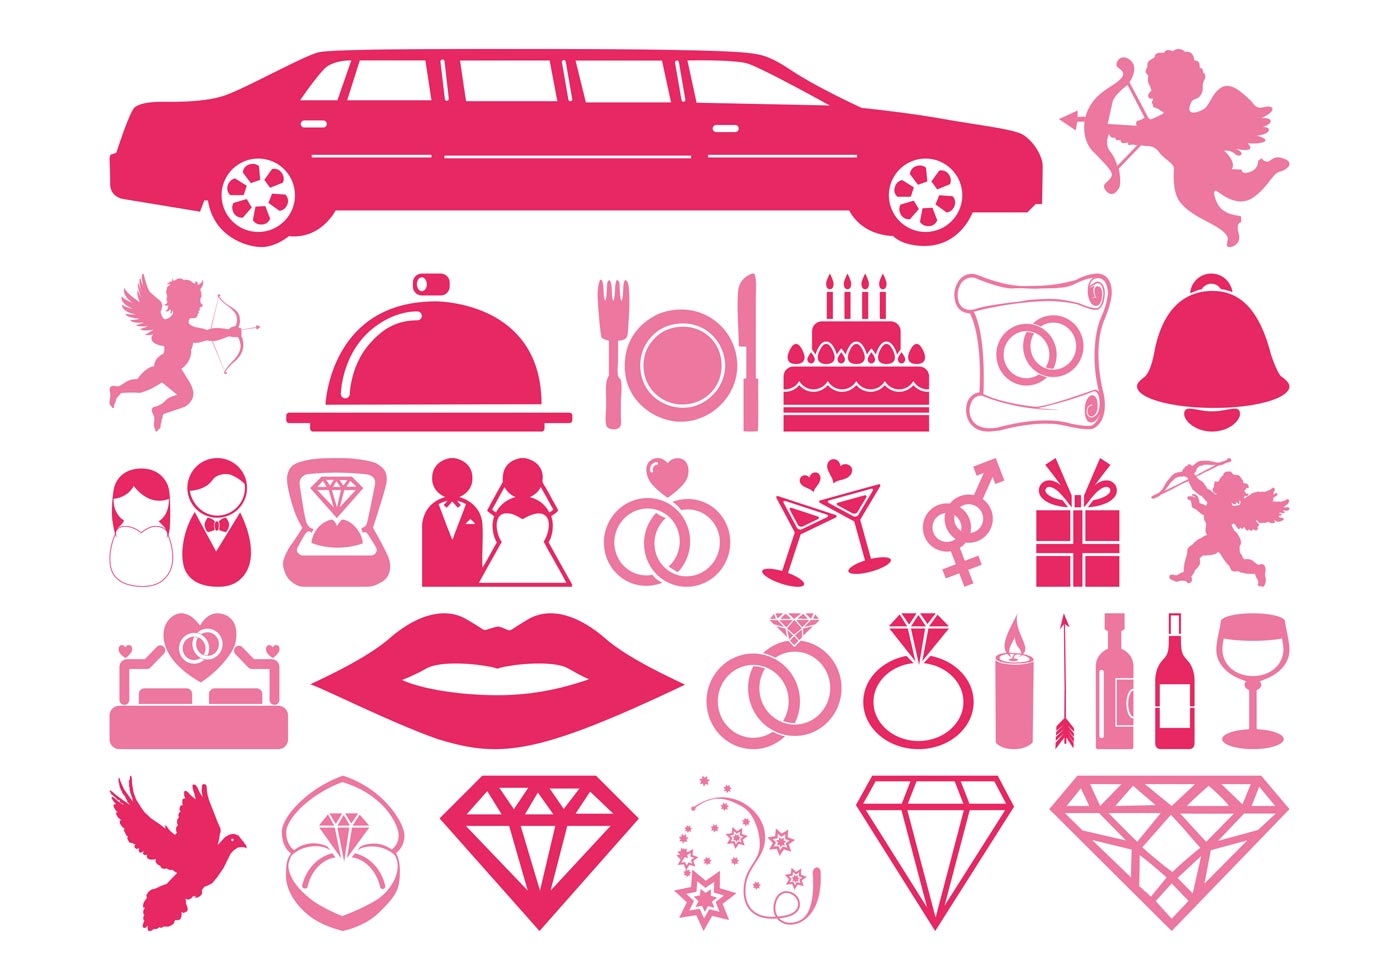 Wedding And Love Icons - Download Free Vector Art, Stock Graphics ...